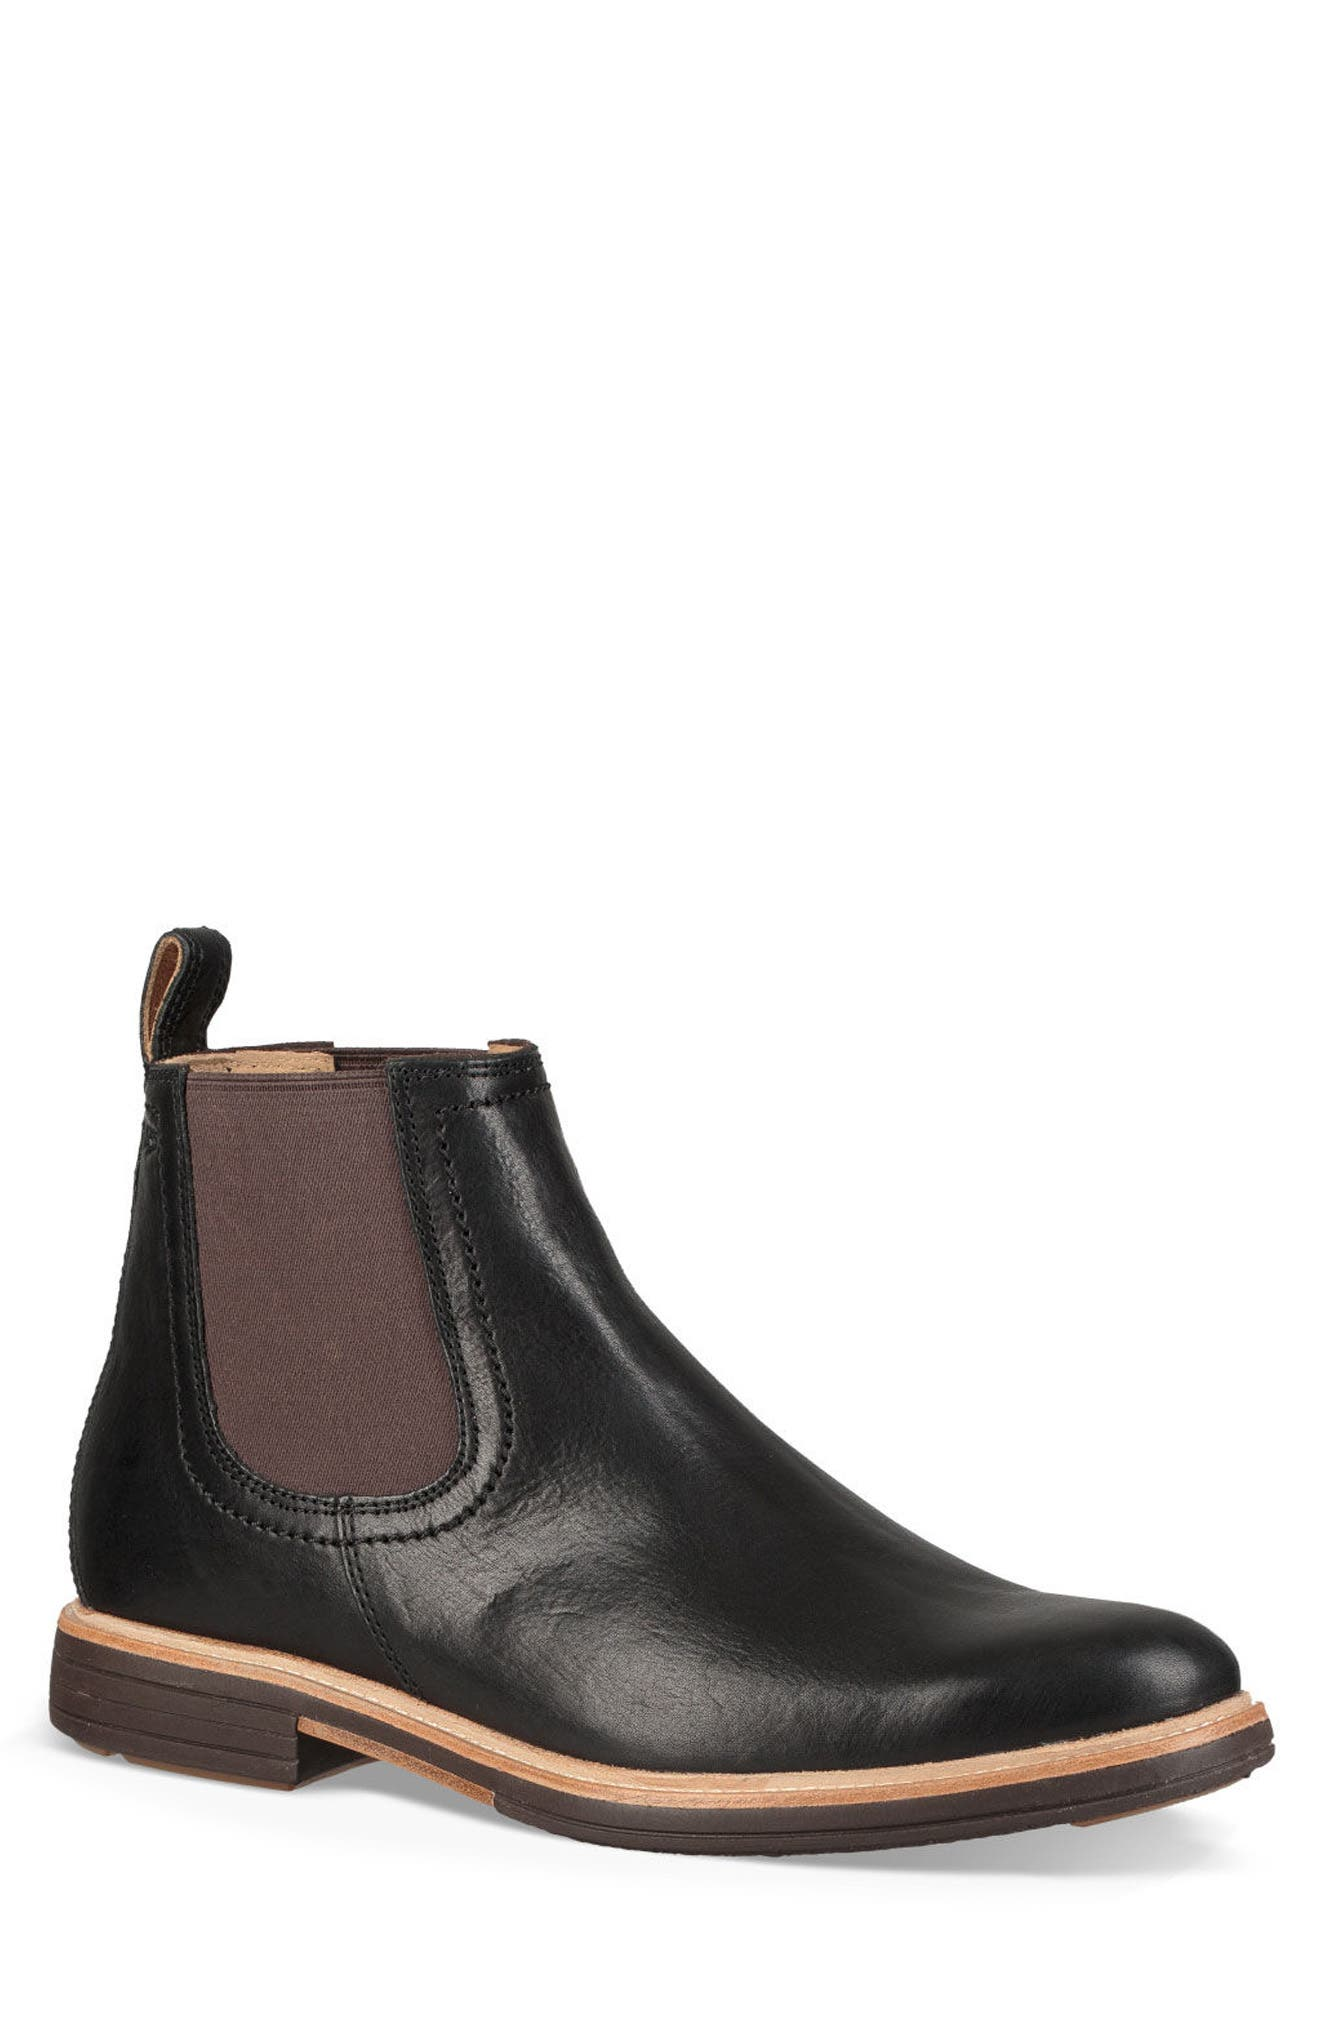 UGG<SUP>®</SUP> Baldvin Chelsea Boot, Main, color, BLACK LEATHER/SUEDE